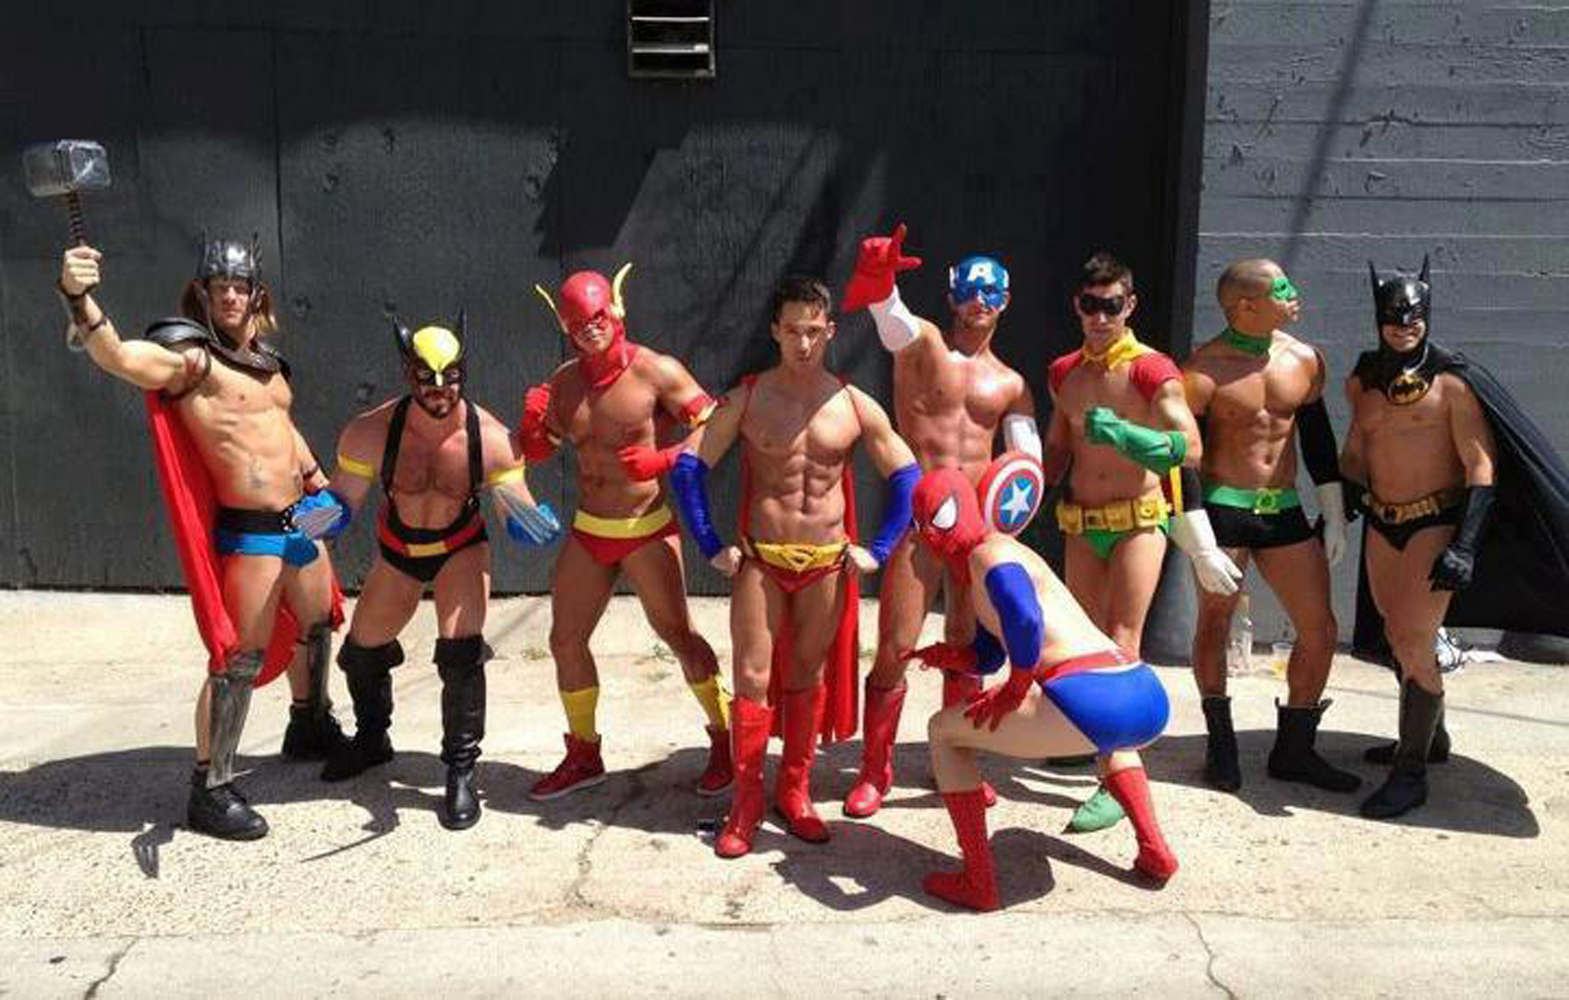 groupe de cosplayers super heros version sexy comique